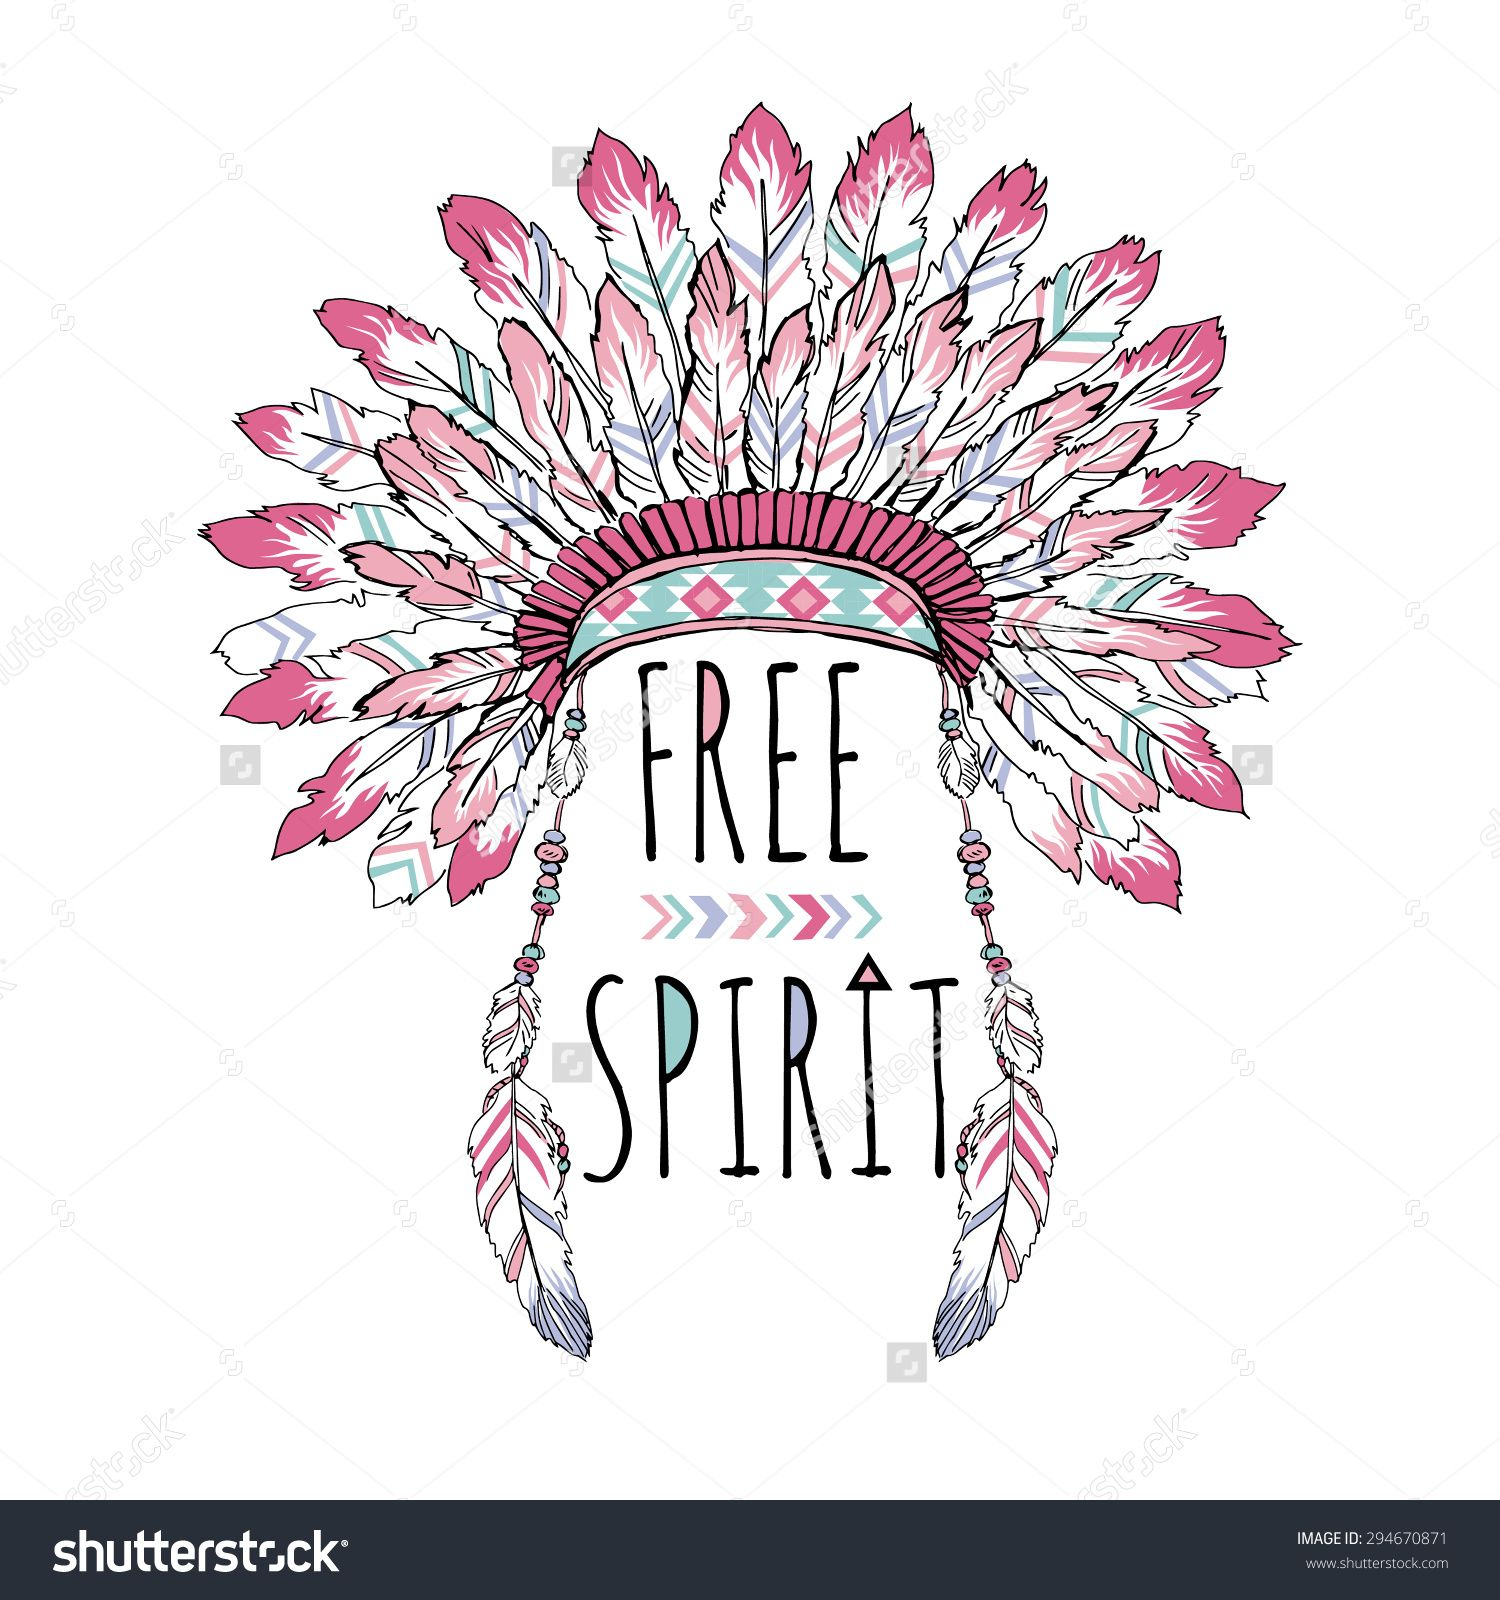 Hand lettered all caps thinking of drawing or painting my name native american poster t shirt design free spirit indian war bonnet lettering buy this stock vector on shutterstock find other images buycottarizona Choice Image